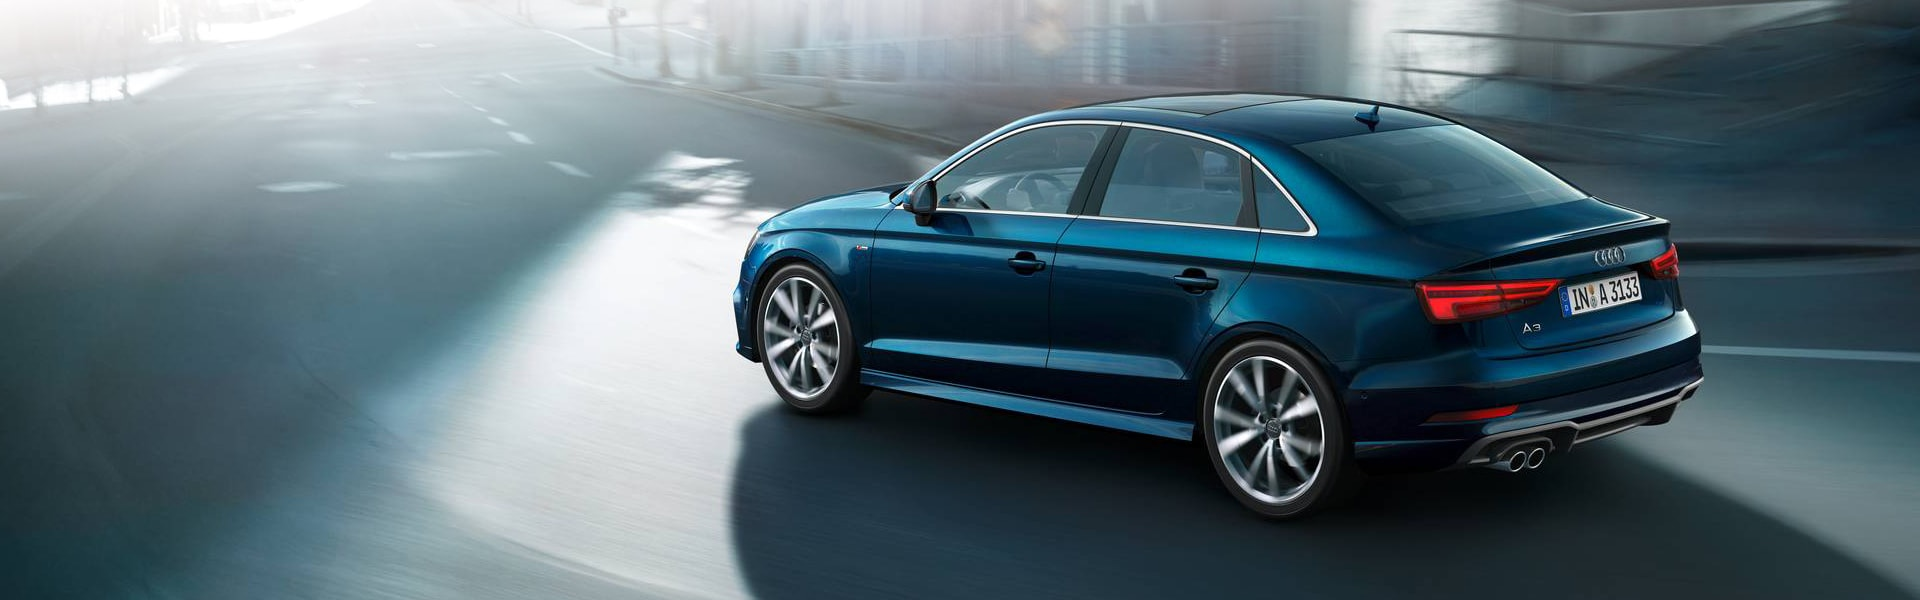 2018 Audi A3 - Audi Kitchener Waterloo